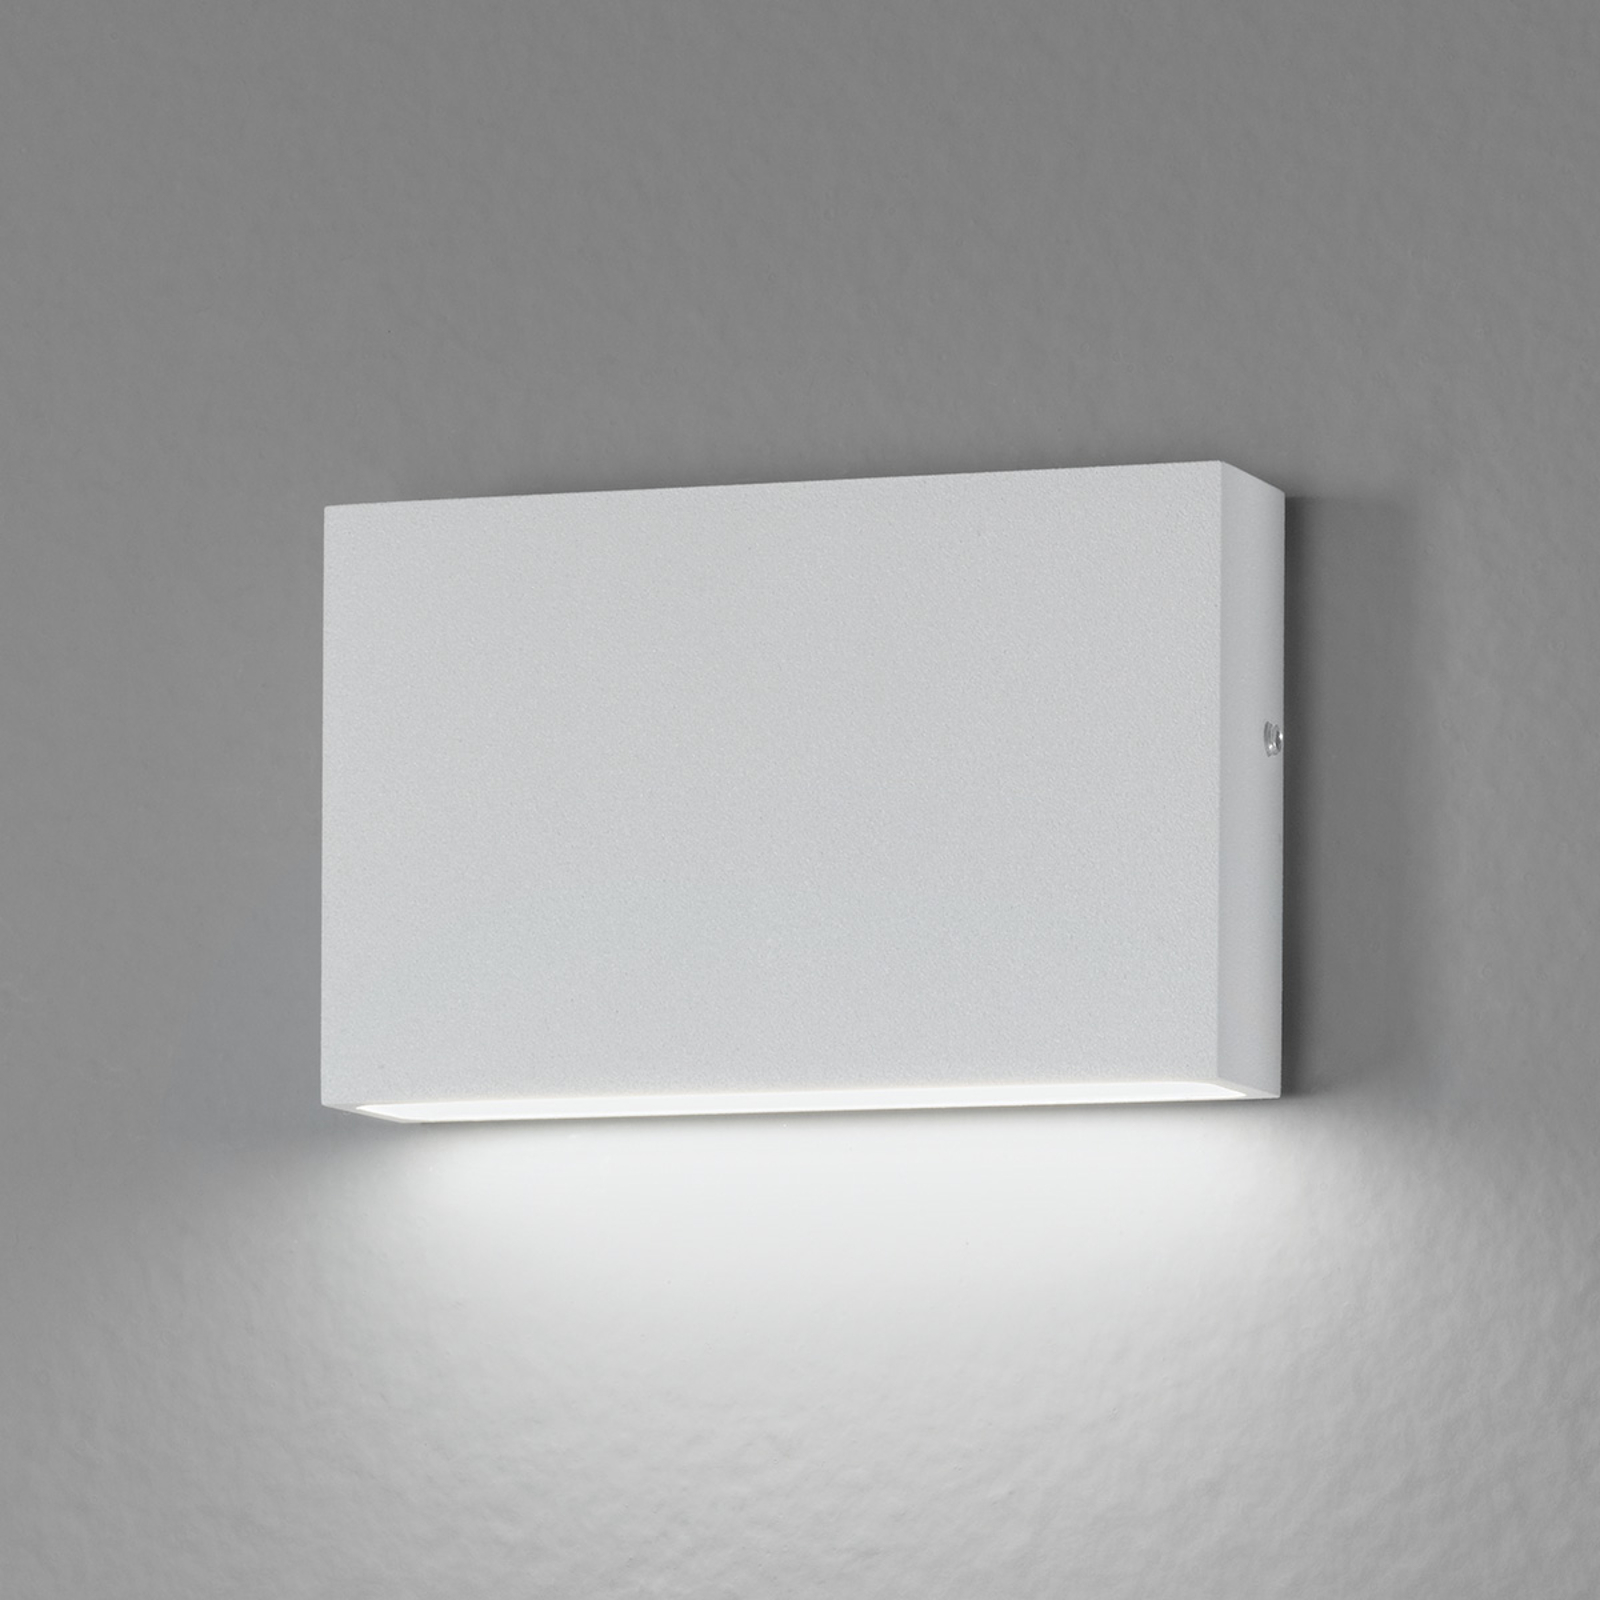 Flatbox LED wall light for indoor & outdoor usage_3023094_1